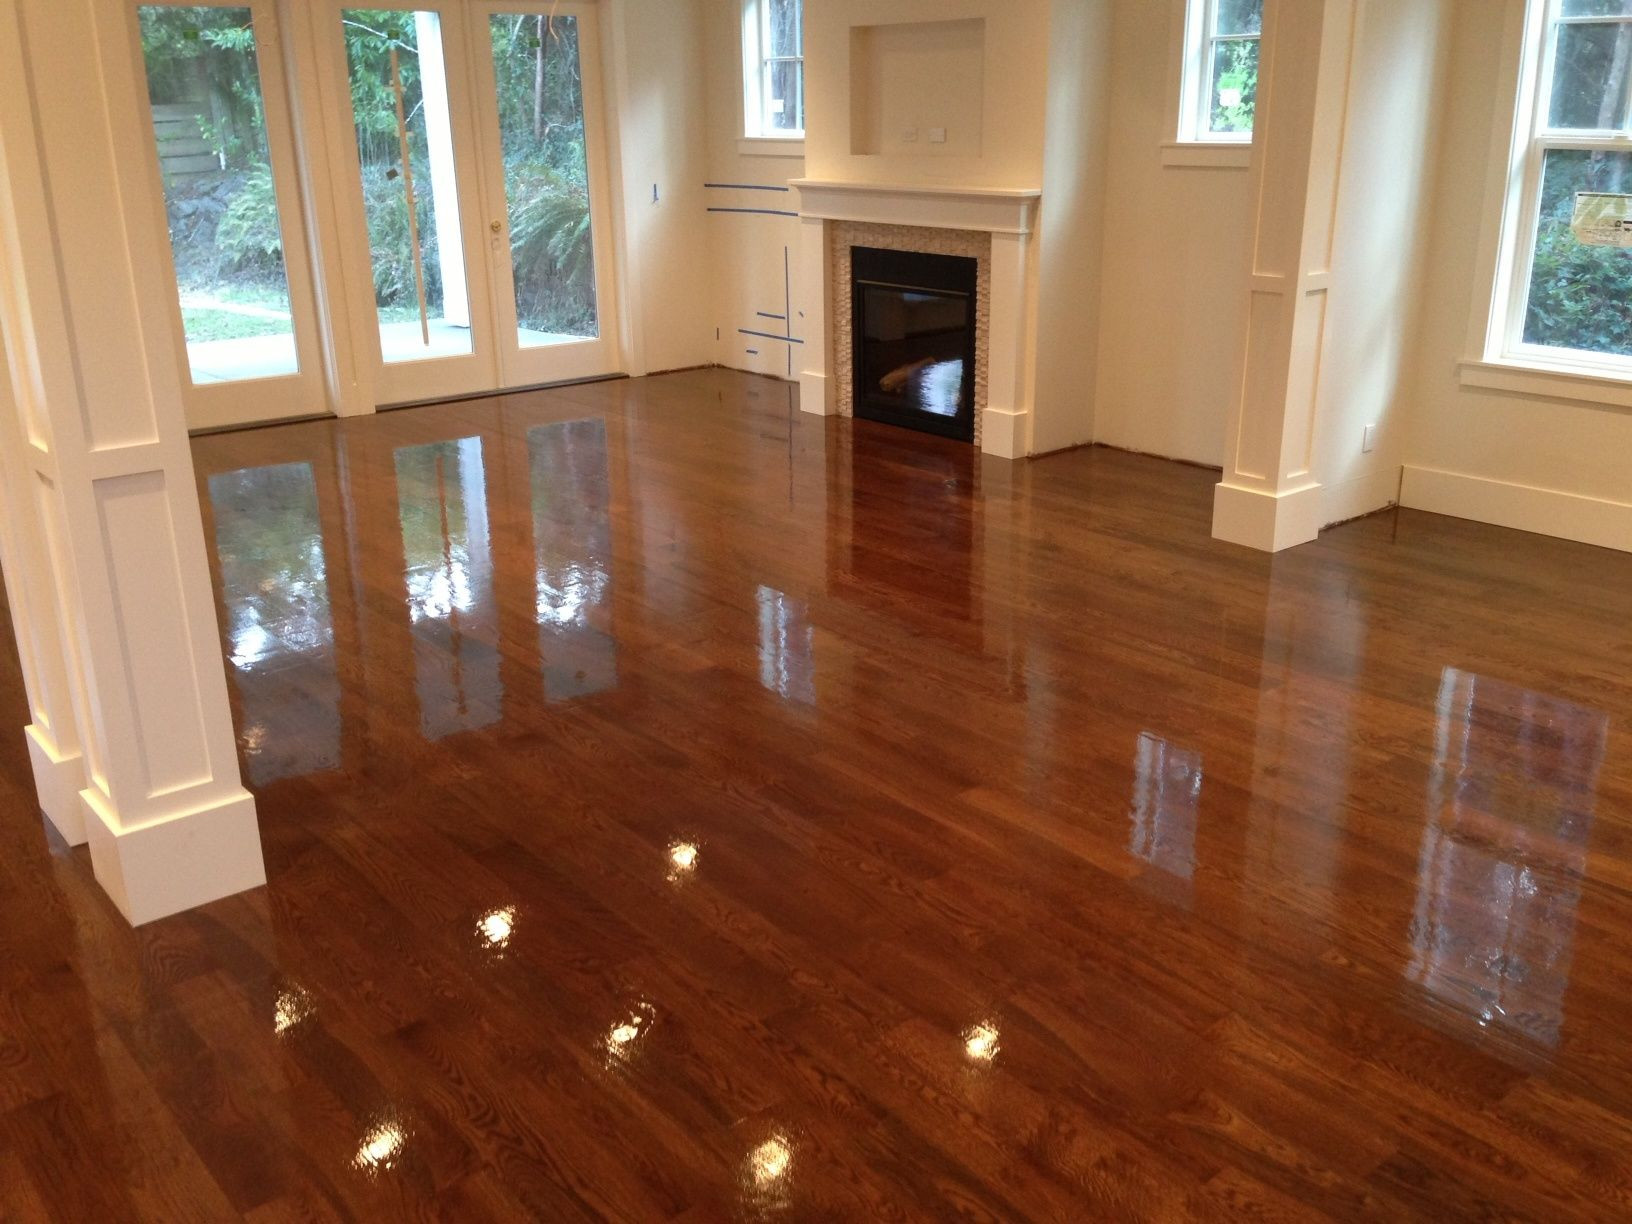 hardwood floor refinishing options of express flooring has outlets in glendale tucson and all neighboring with hardwood floors seattle hardwood floor refinishing and installation seattle tacoma moore floors inc